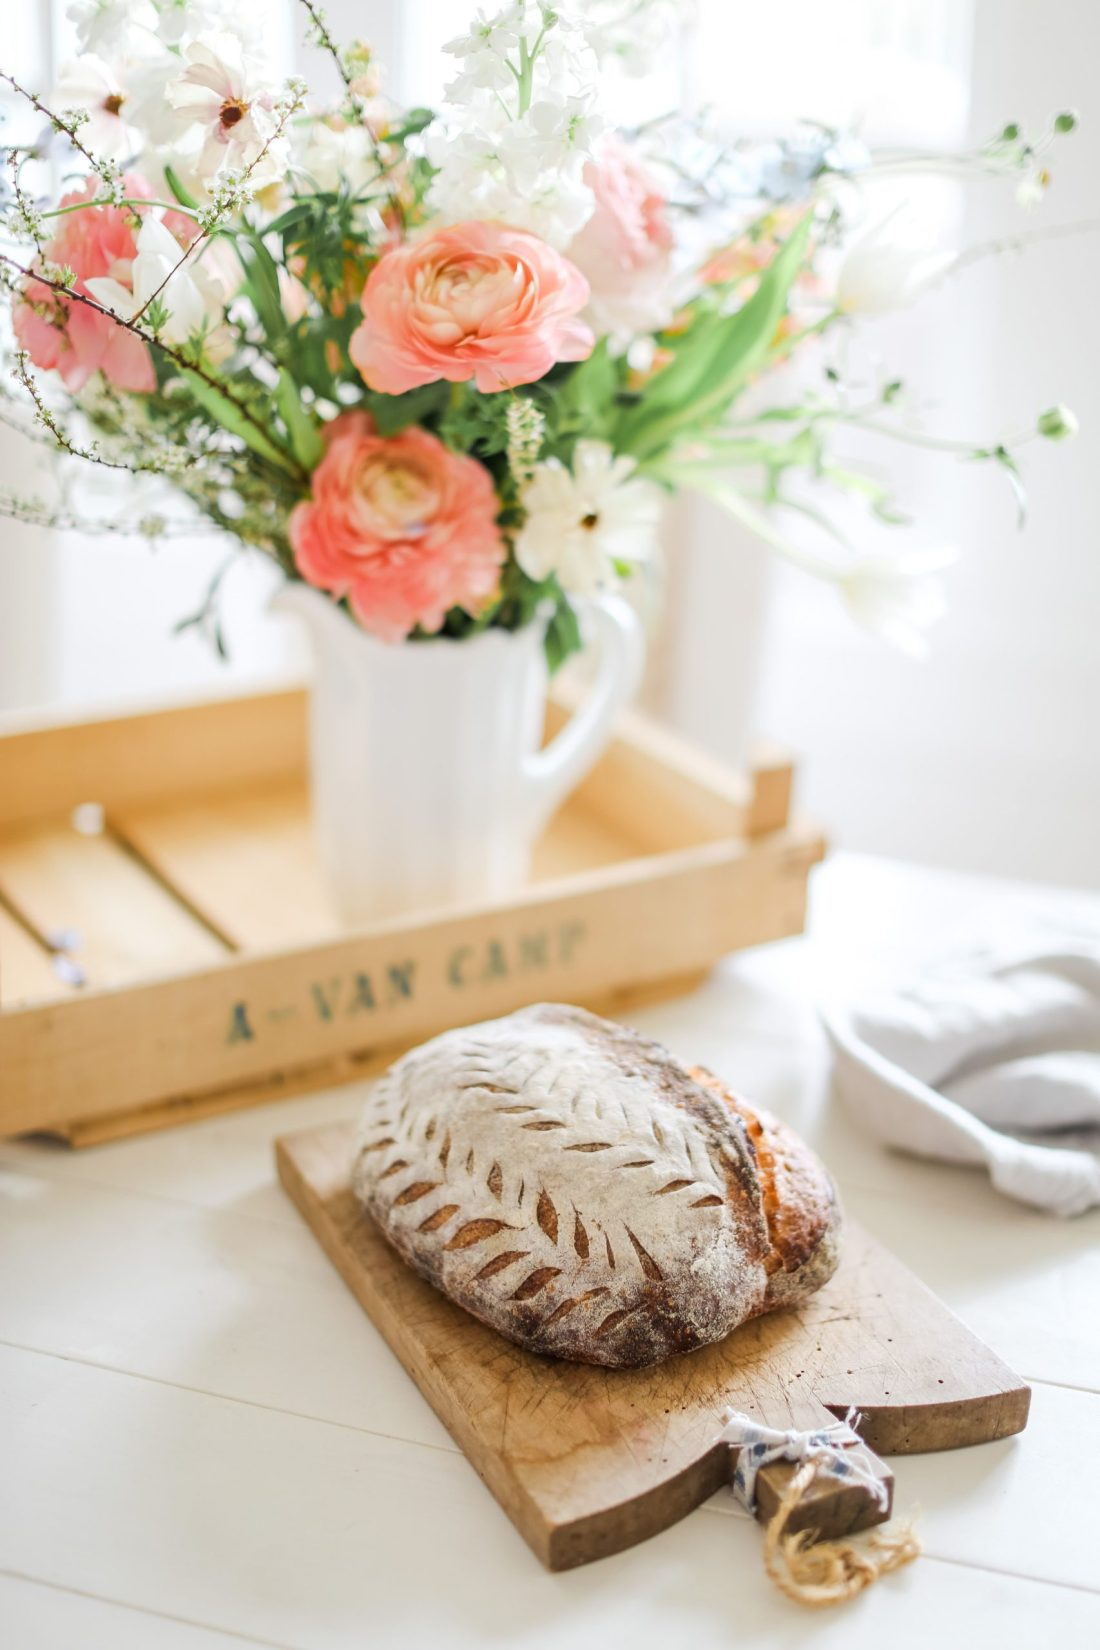 Fool proof way to make a sourdough starter for stunning aritisan bread at home